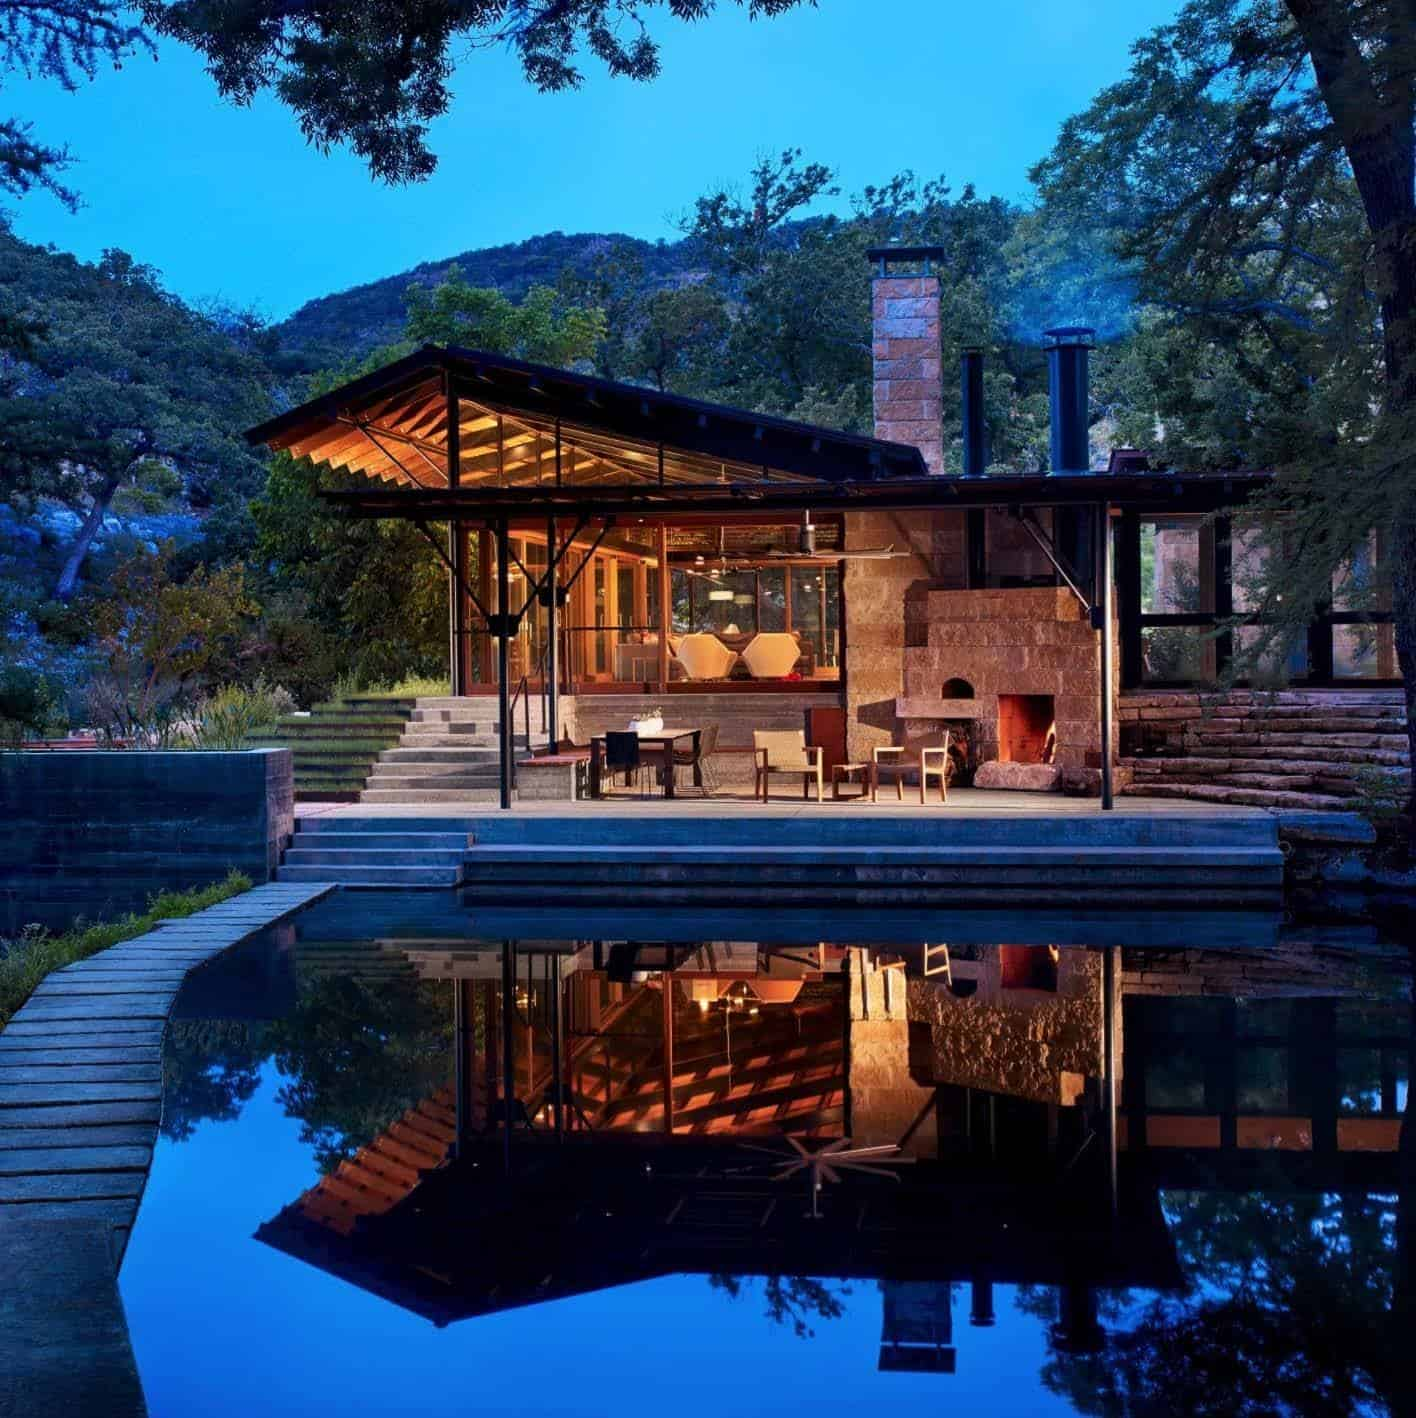 Waterworks Aquatics Highlands Ranch Home: Texas Hill Country Ranch Home Offers A Water's Edge